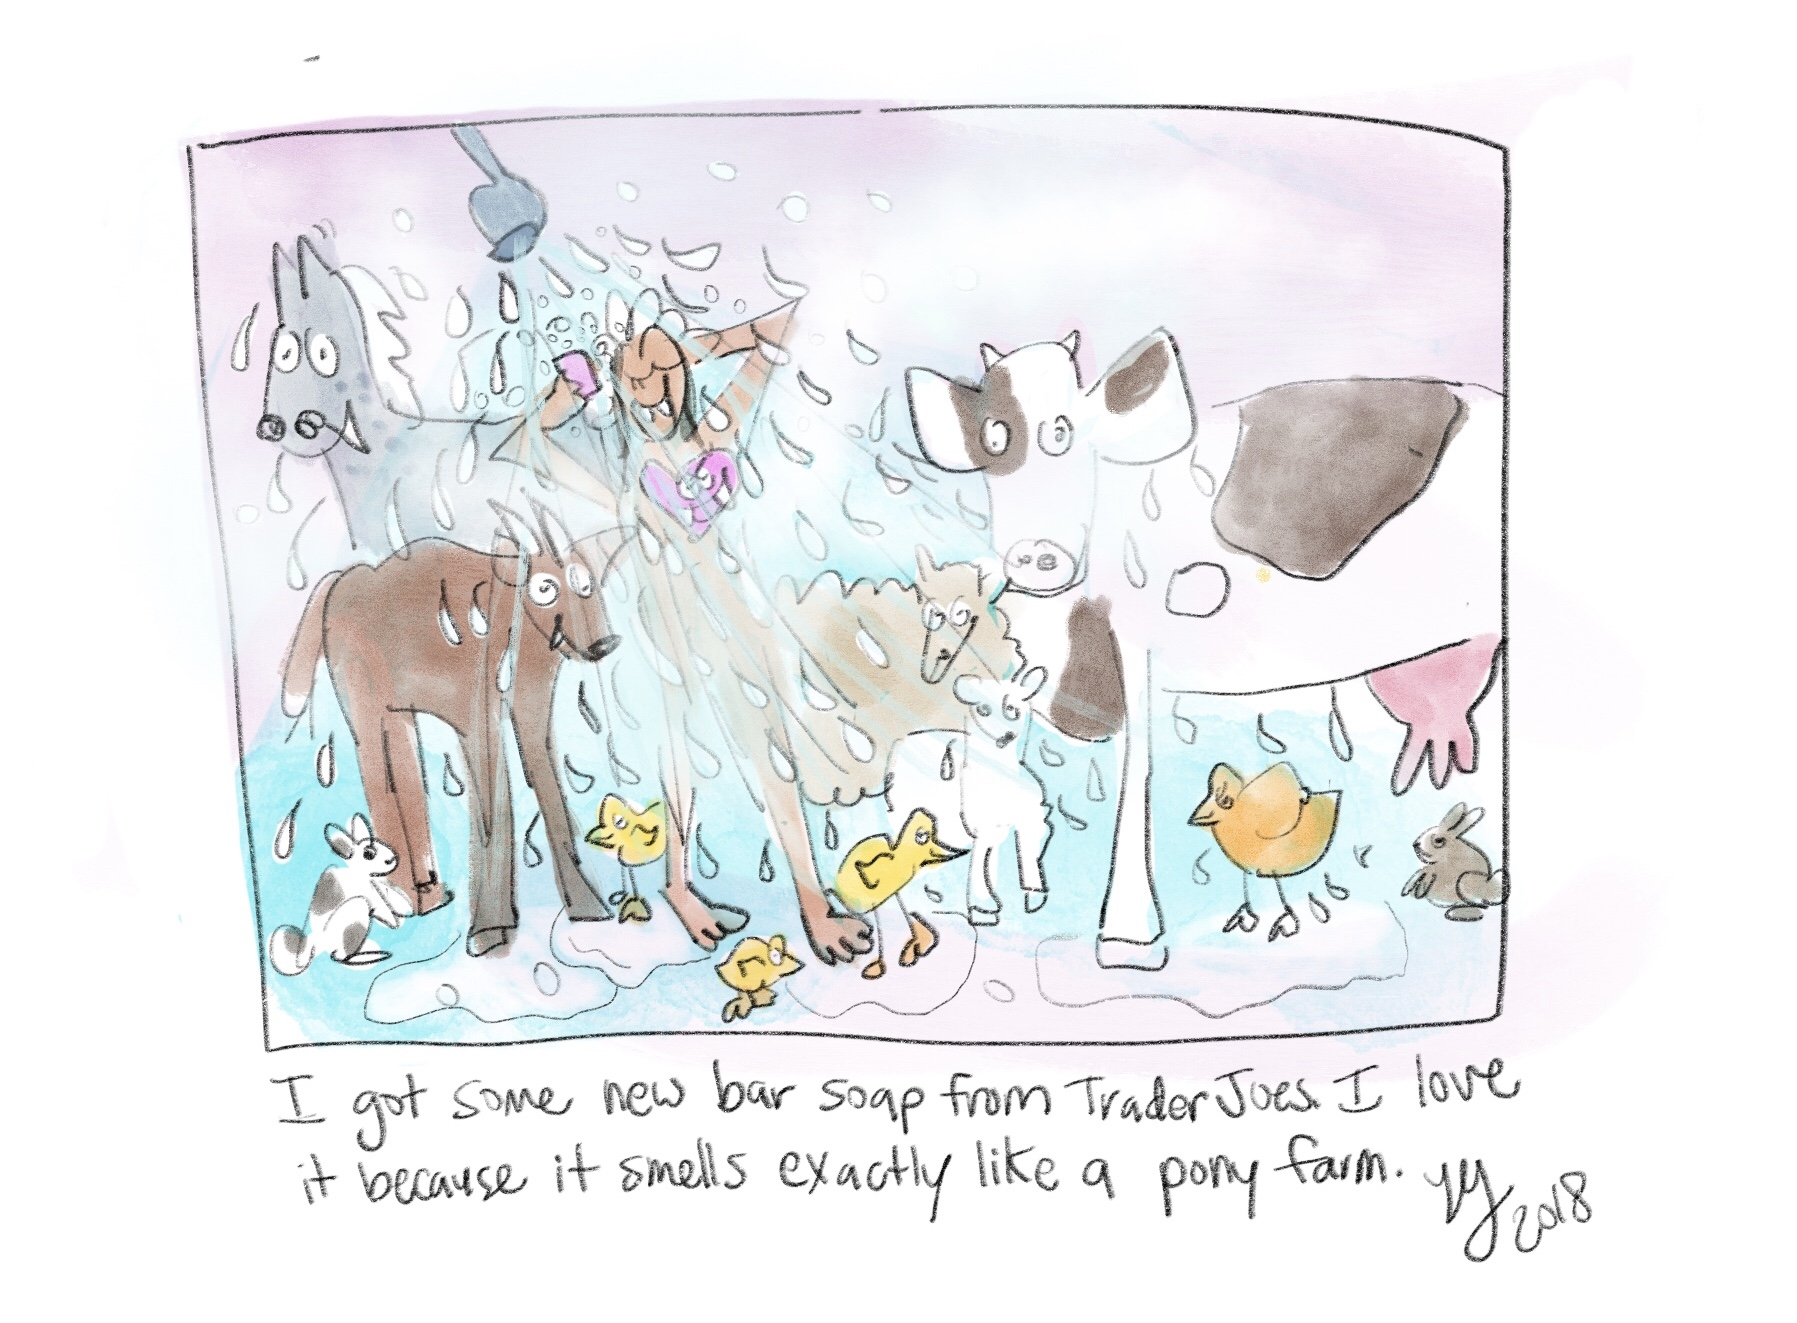 My new soap smells just like a pony farm so here is a comic about what it would look like if I were showering at a pony farm. This is a weird funny comic.